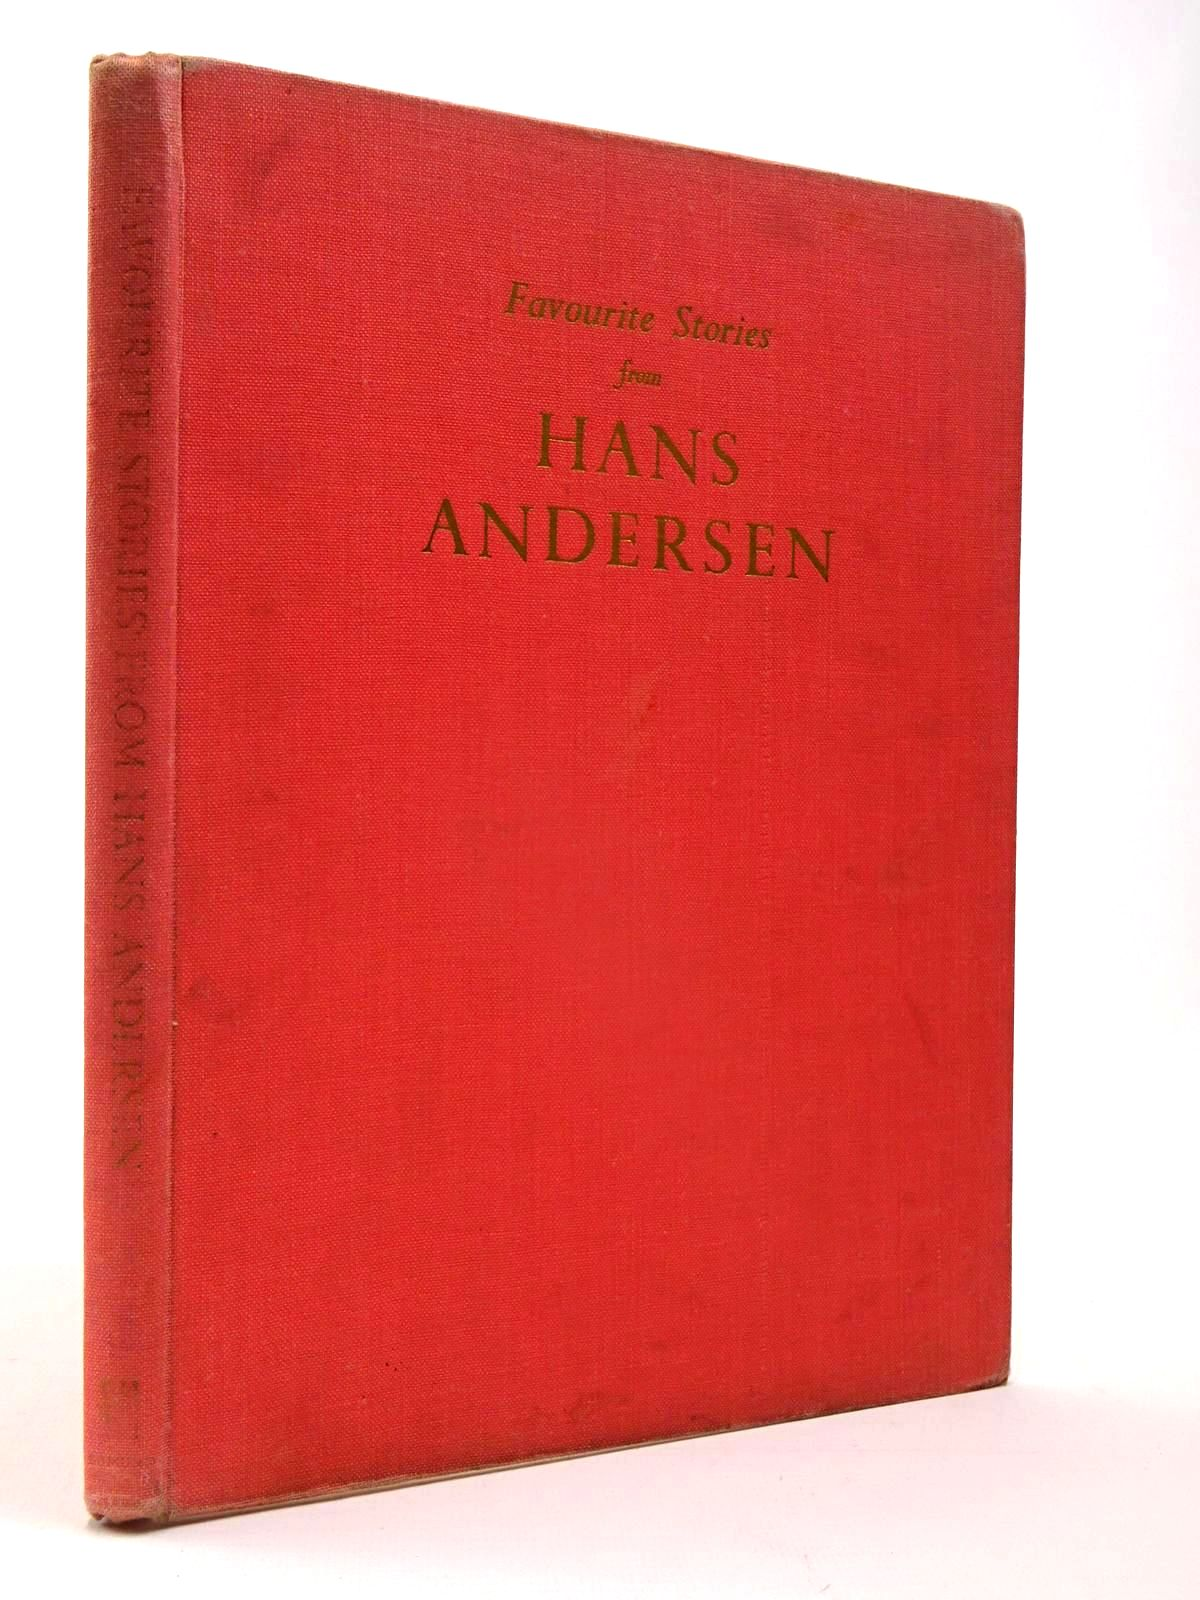 Photo of FAVOURITE STORIES FROM HANS ANDERSEN written by Andersen, Hans Christian Green, Roger Lancelyn illustrated by Cloke, Rene published by Edmund Ward (STOCK CODE: 2130105)  for sale by Stella & Rose's Books